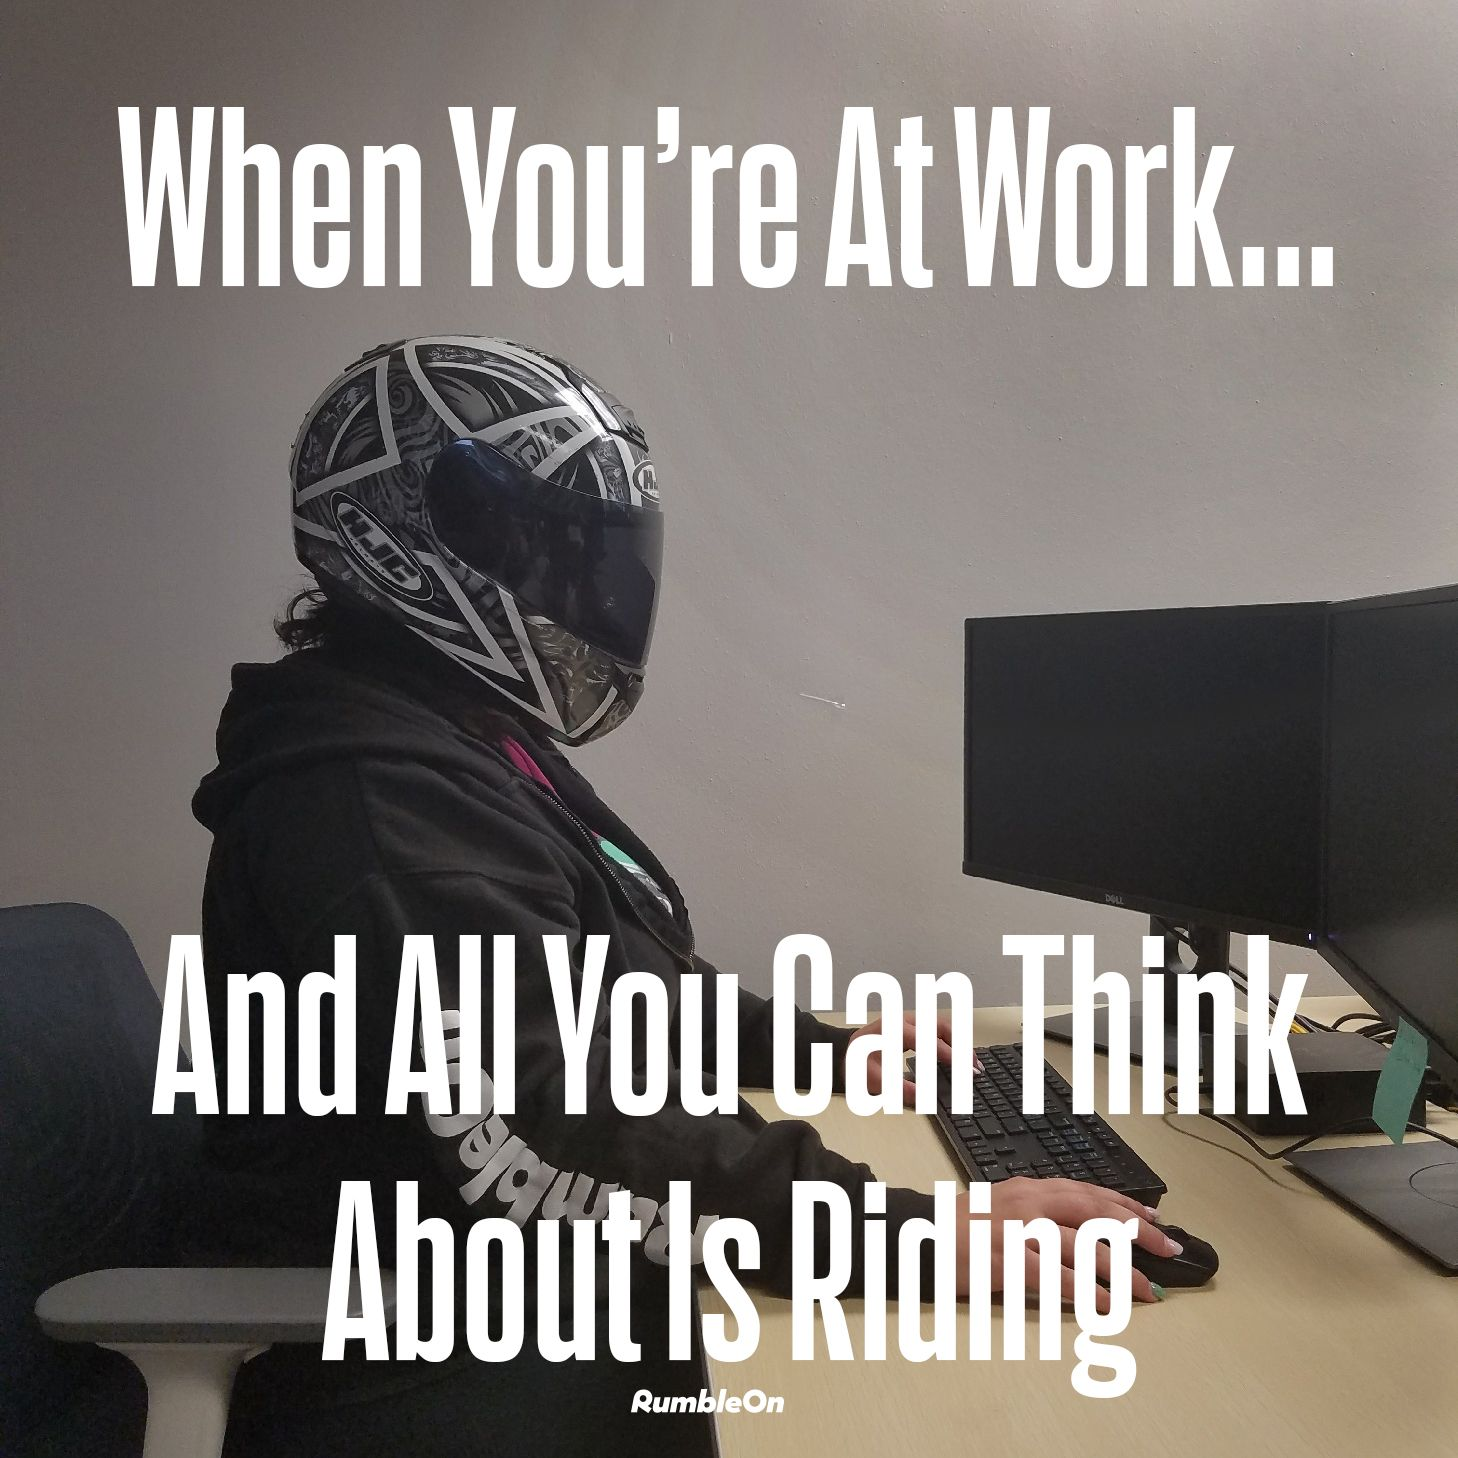 Literally every single day. RumbleOn Rider Motorcycle